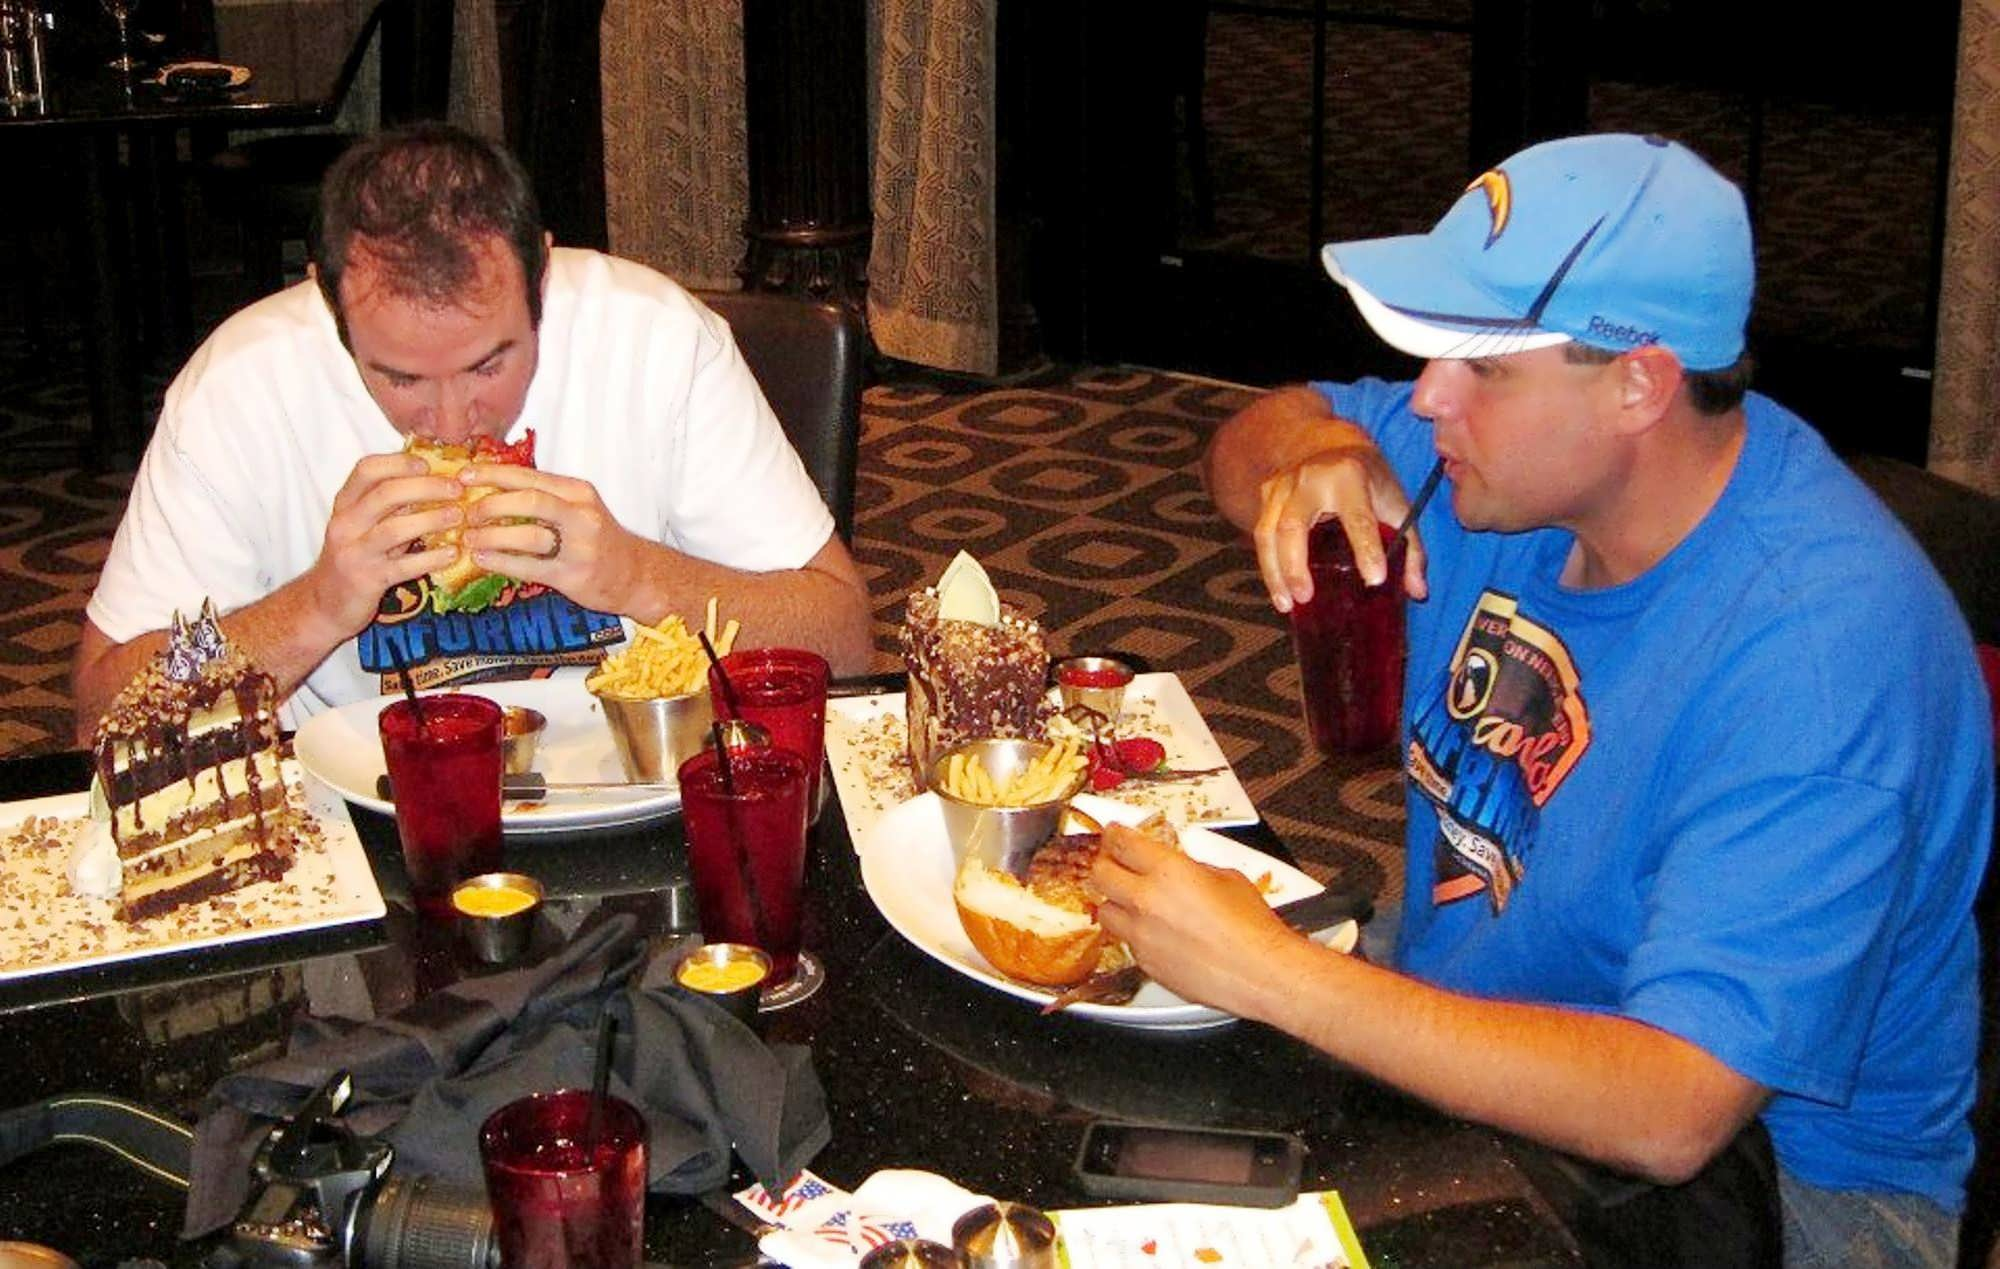 the kitchen challenge at universals hard rock hotel - Man V Food Kitchen Sink